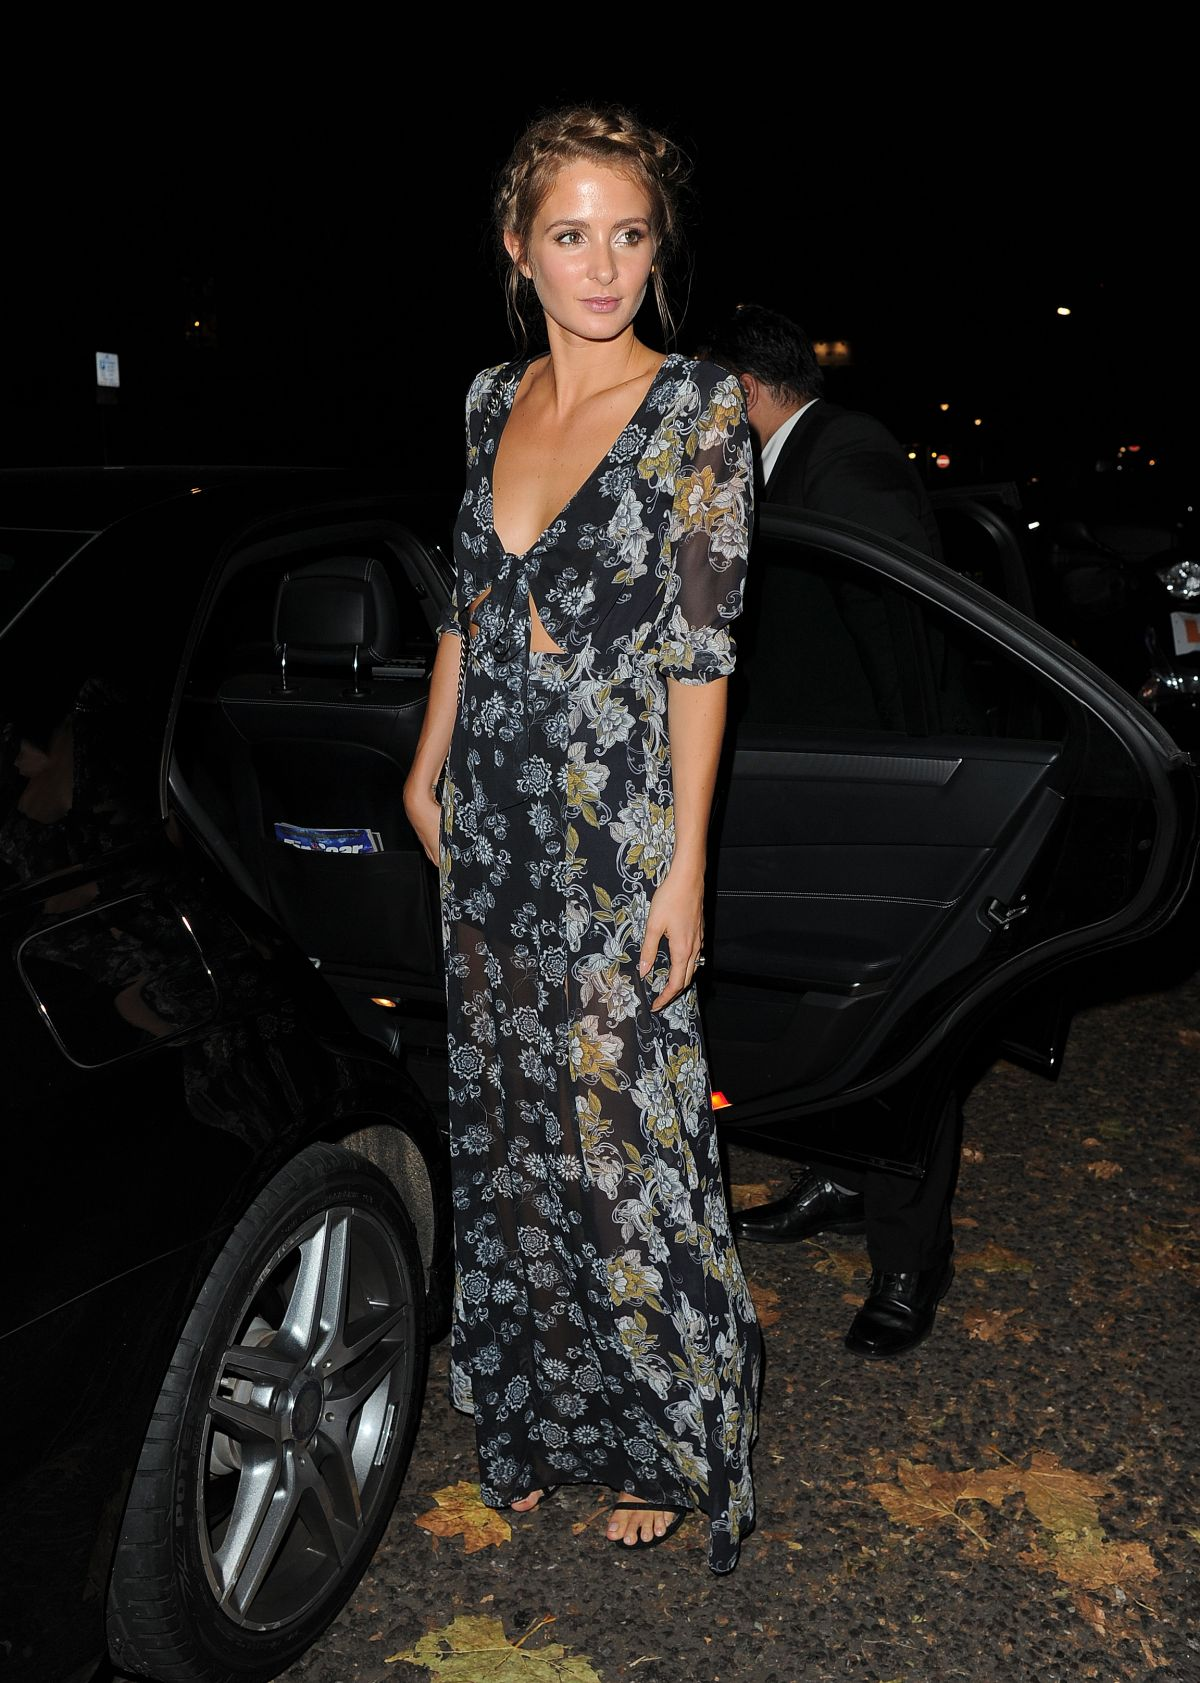 MILLIE MACKINTOSH at Her Fashion Preview and VIP Launch Dinner in London 11/10/2015